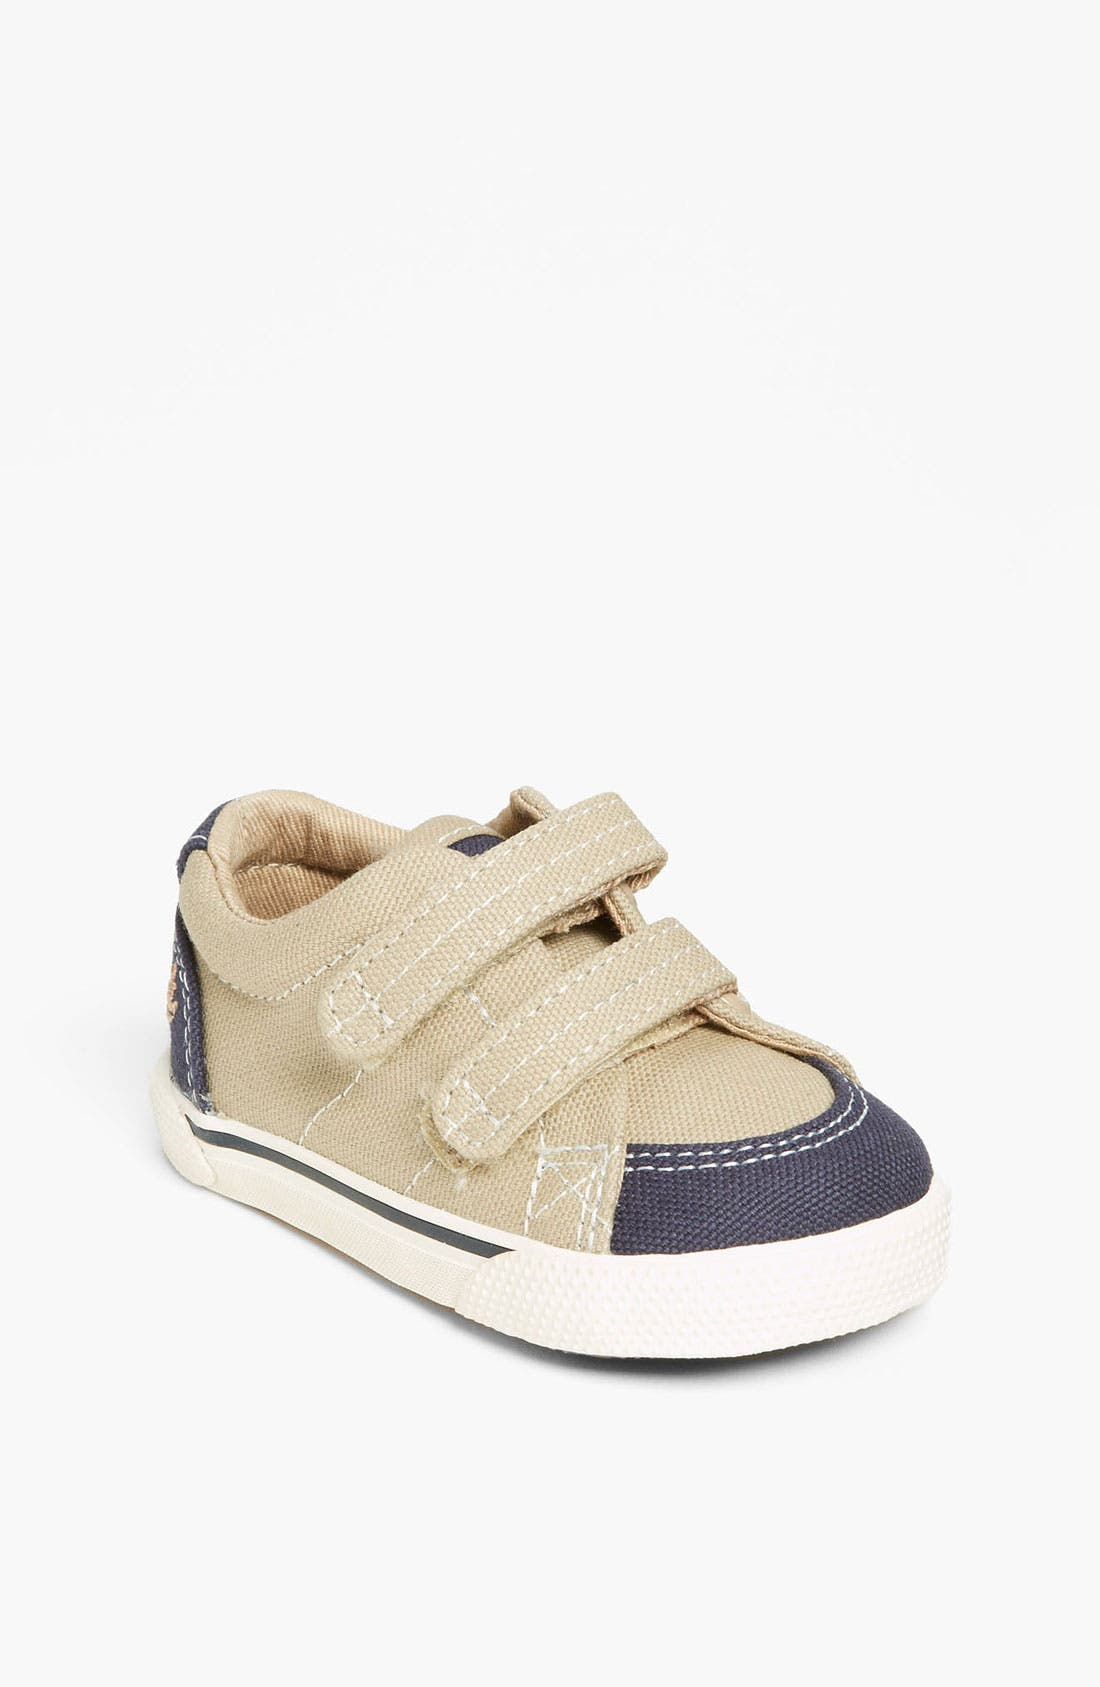 Alternate Image 1 Selected - Sperry Top-Sider® 'Halyard' Crib Shoe (Baby)